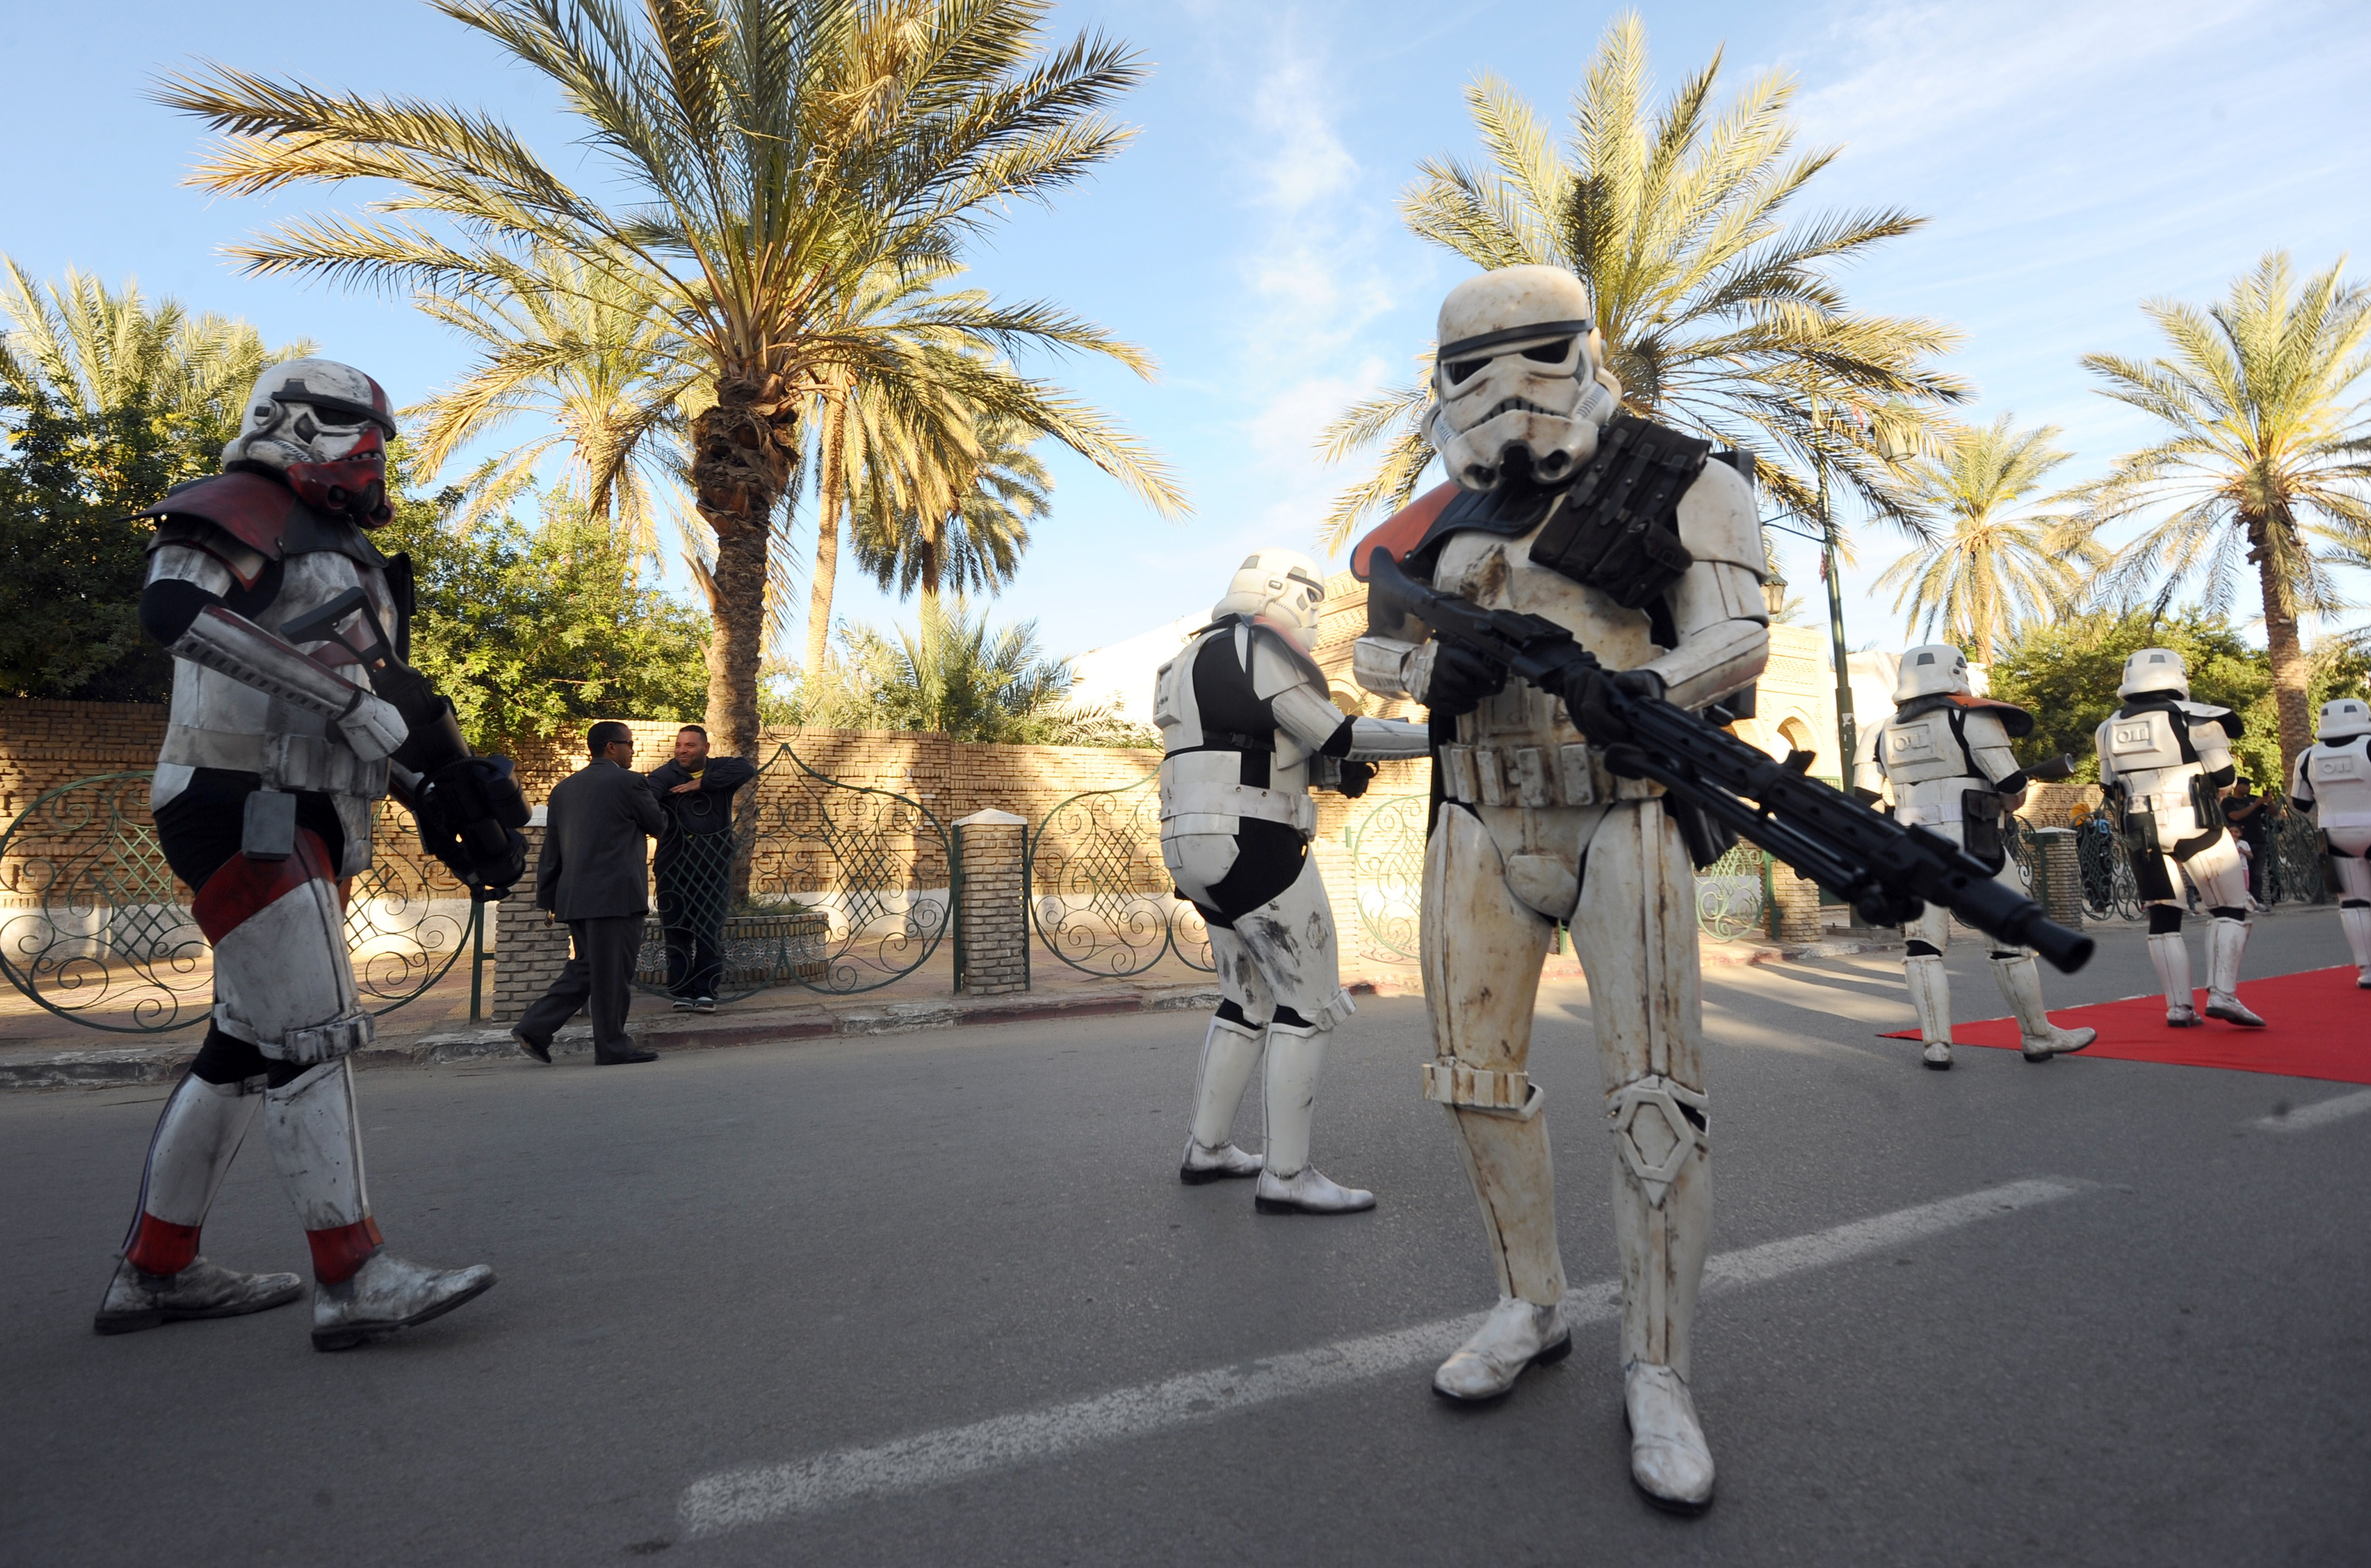 Tunisia: Fans pose as stormtroopers during a parade on the last day of the first international meeting of Star Wars fans in Tozeur, southern Tunisia.